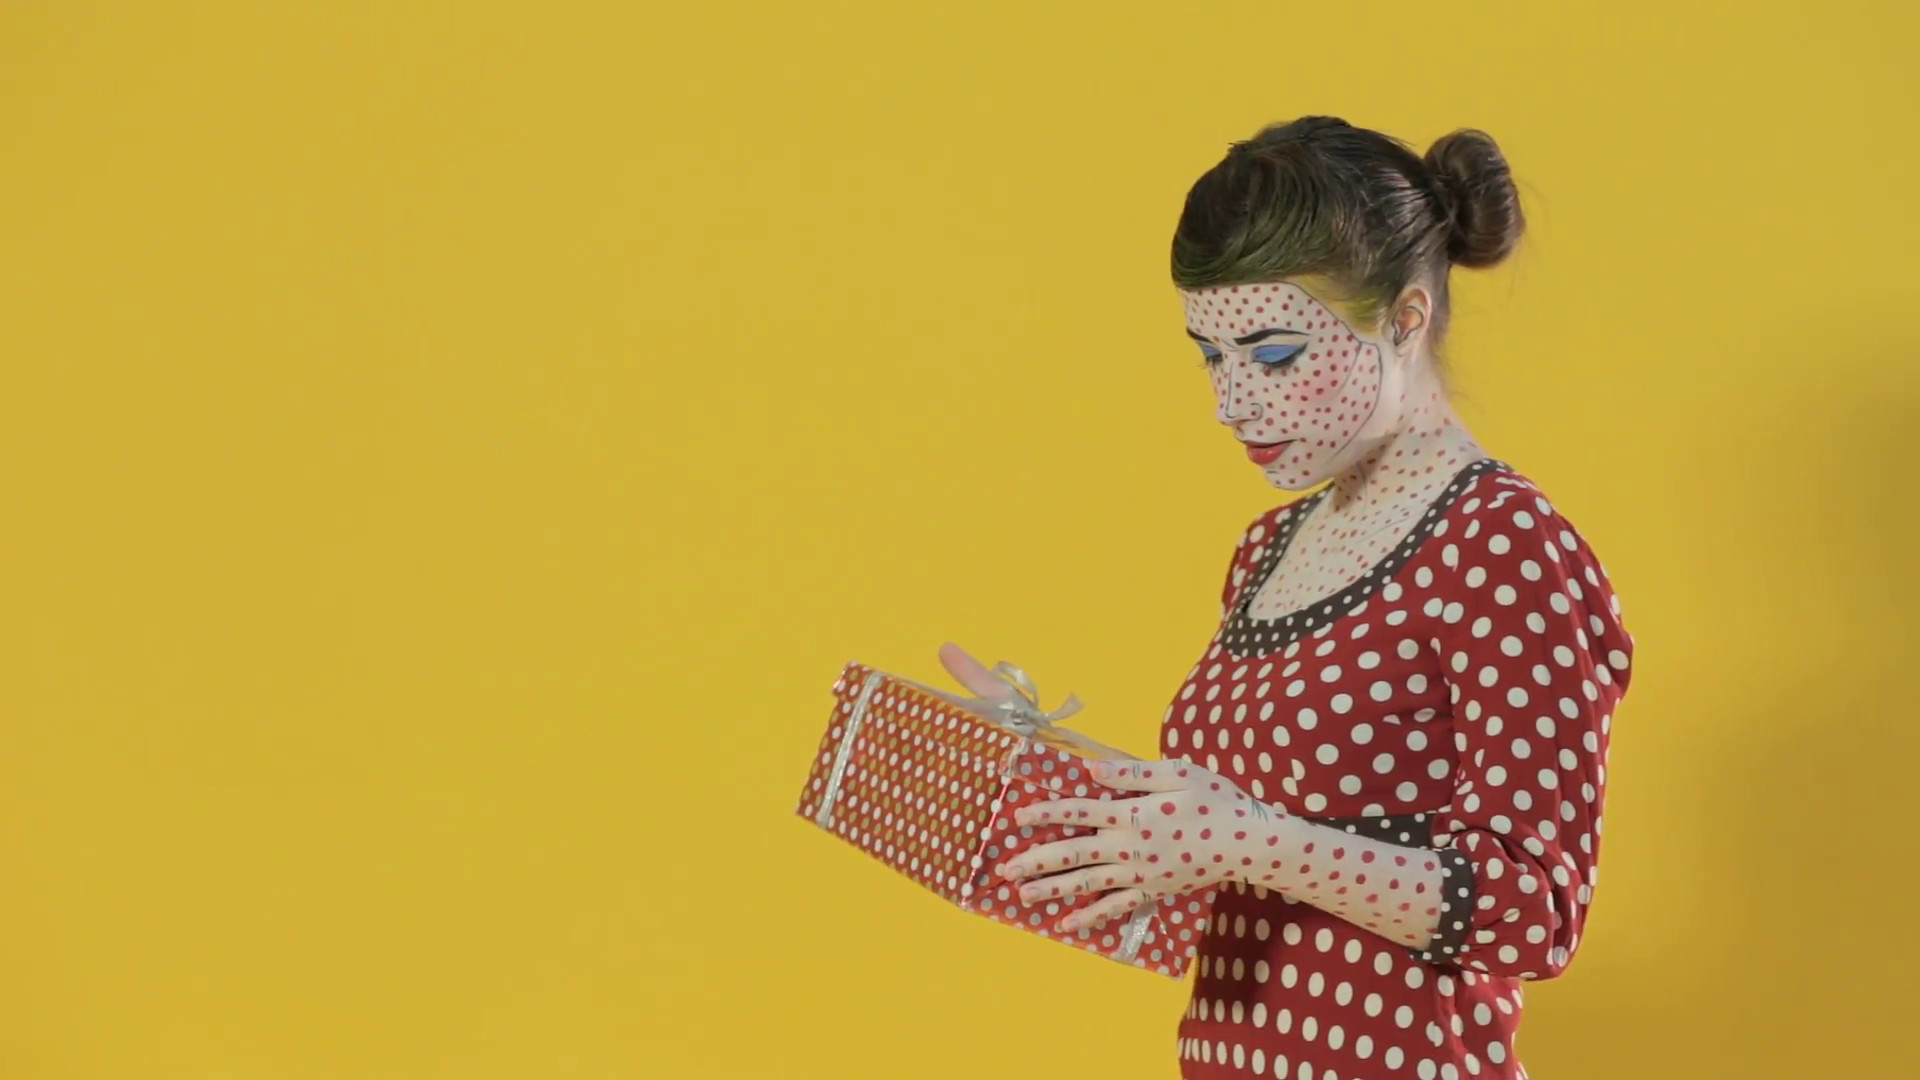 1920x1080 Girl made up as girl from the comics on a bright yellow background with a  gift Stock Video Footage - VideoBlocks